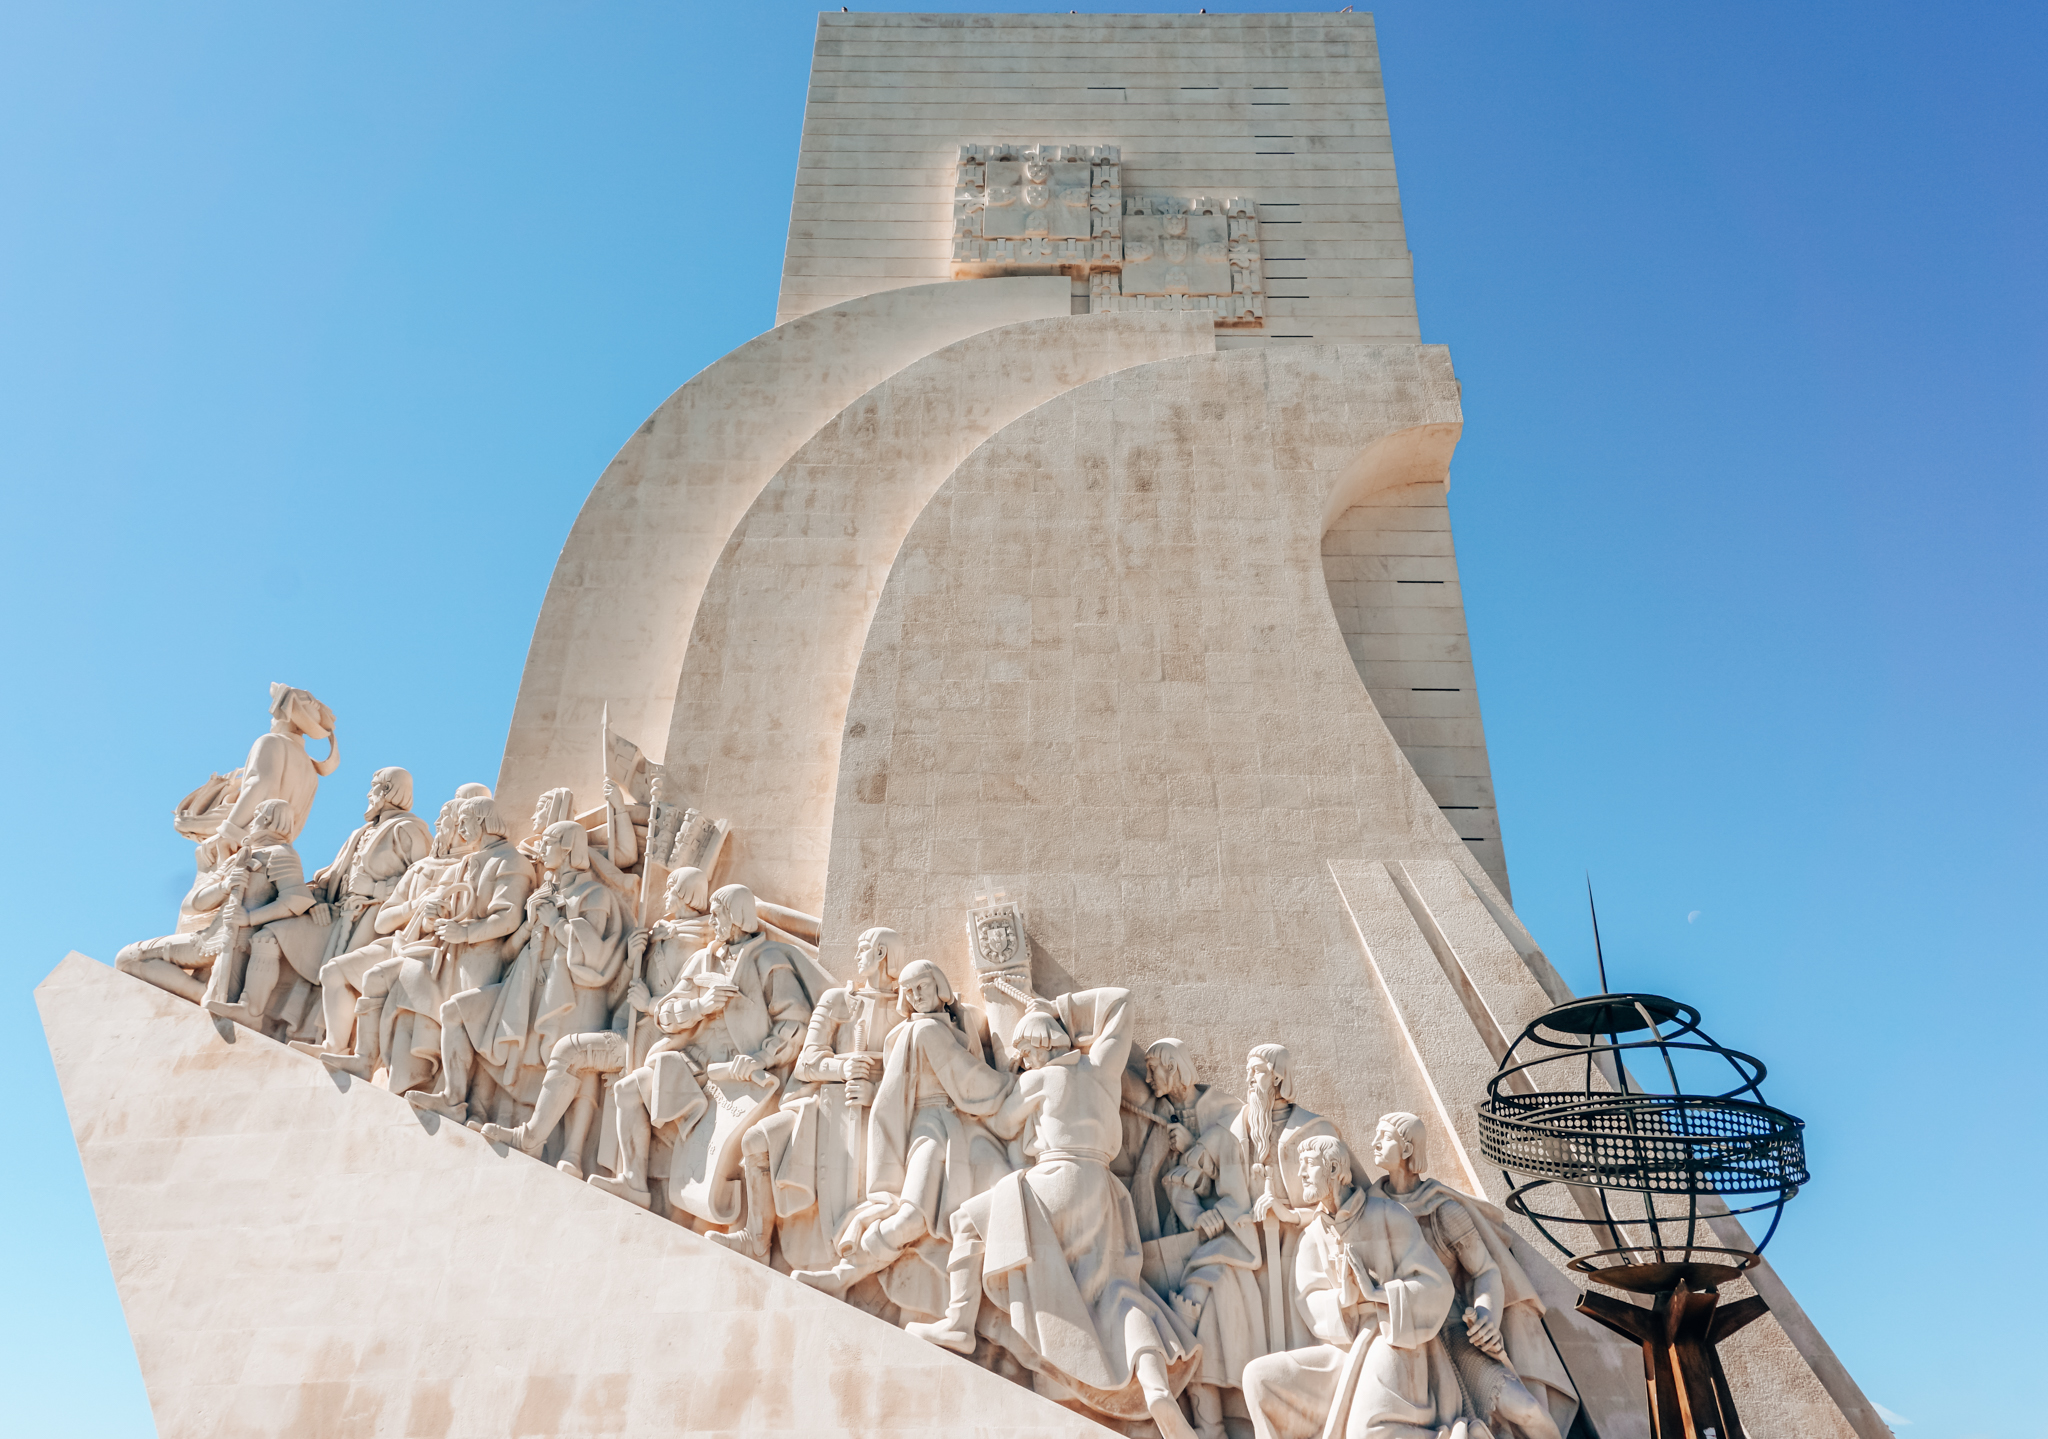 Monument to the Discoveries (east side) in Lisbon